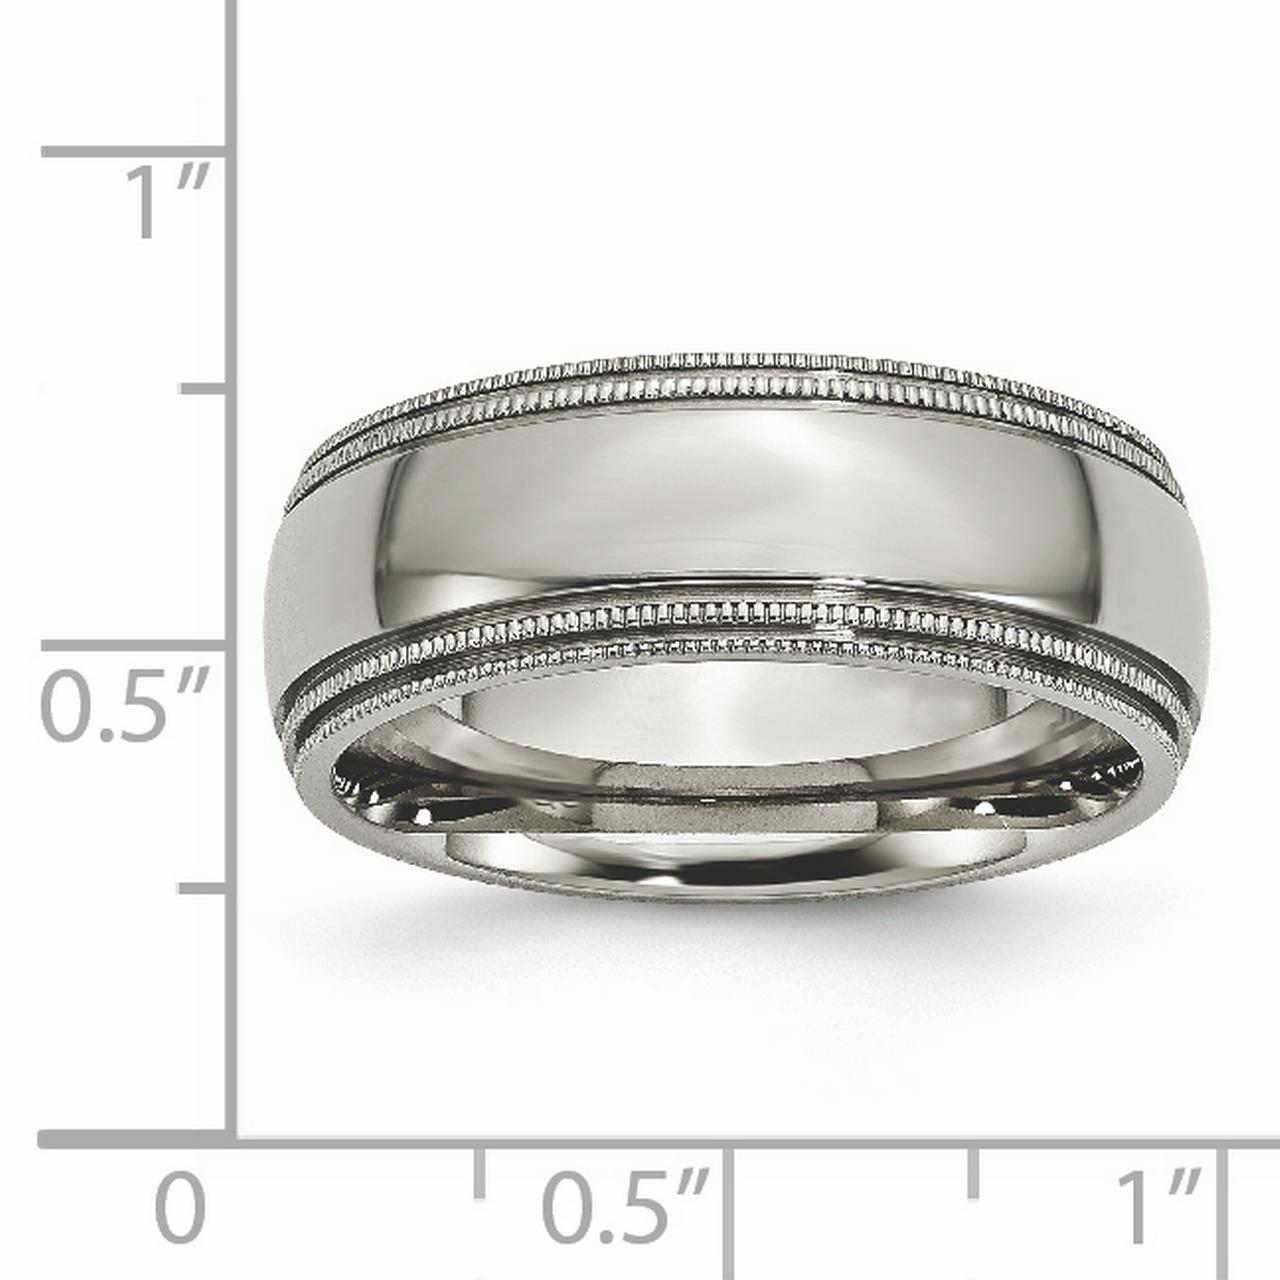 Titanium Grooved Beaded Edge 8mm Wedding Ring Band Size 12.50 Classic Milgrain Fashion Jewelry Gifts For Women For Her - image 2 of 6